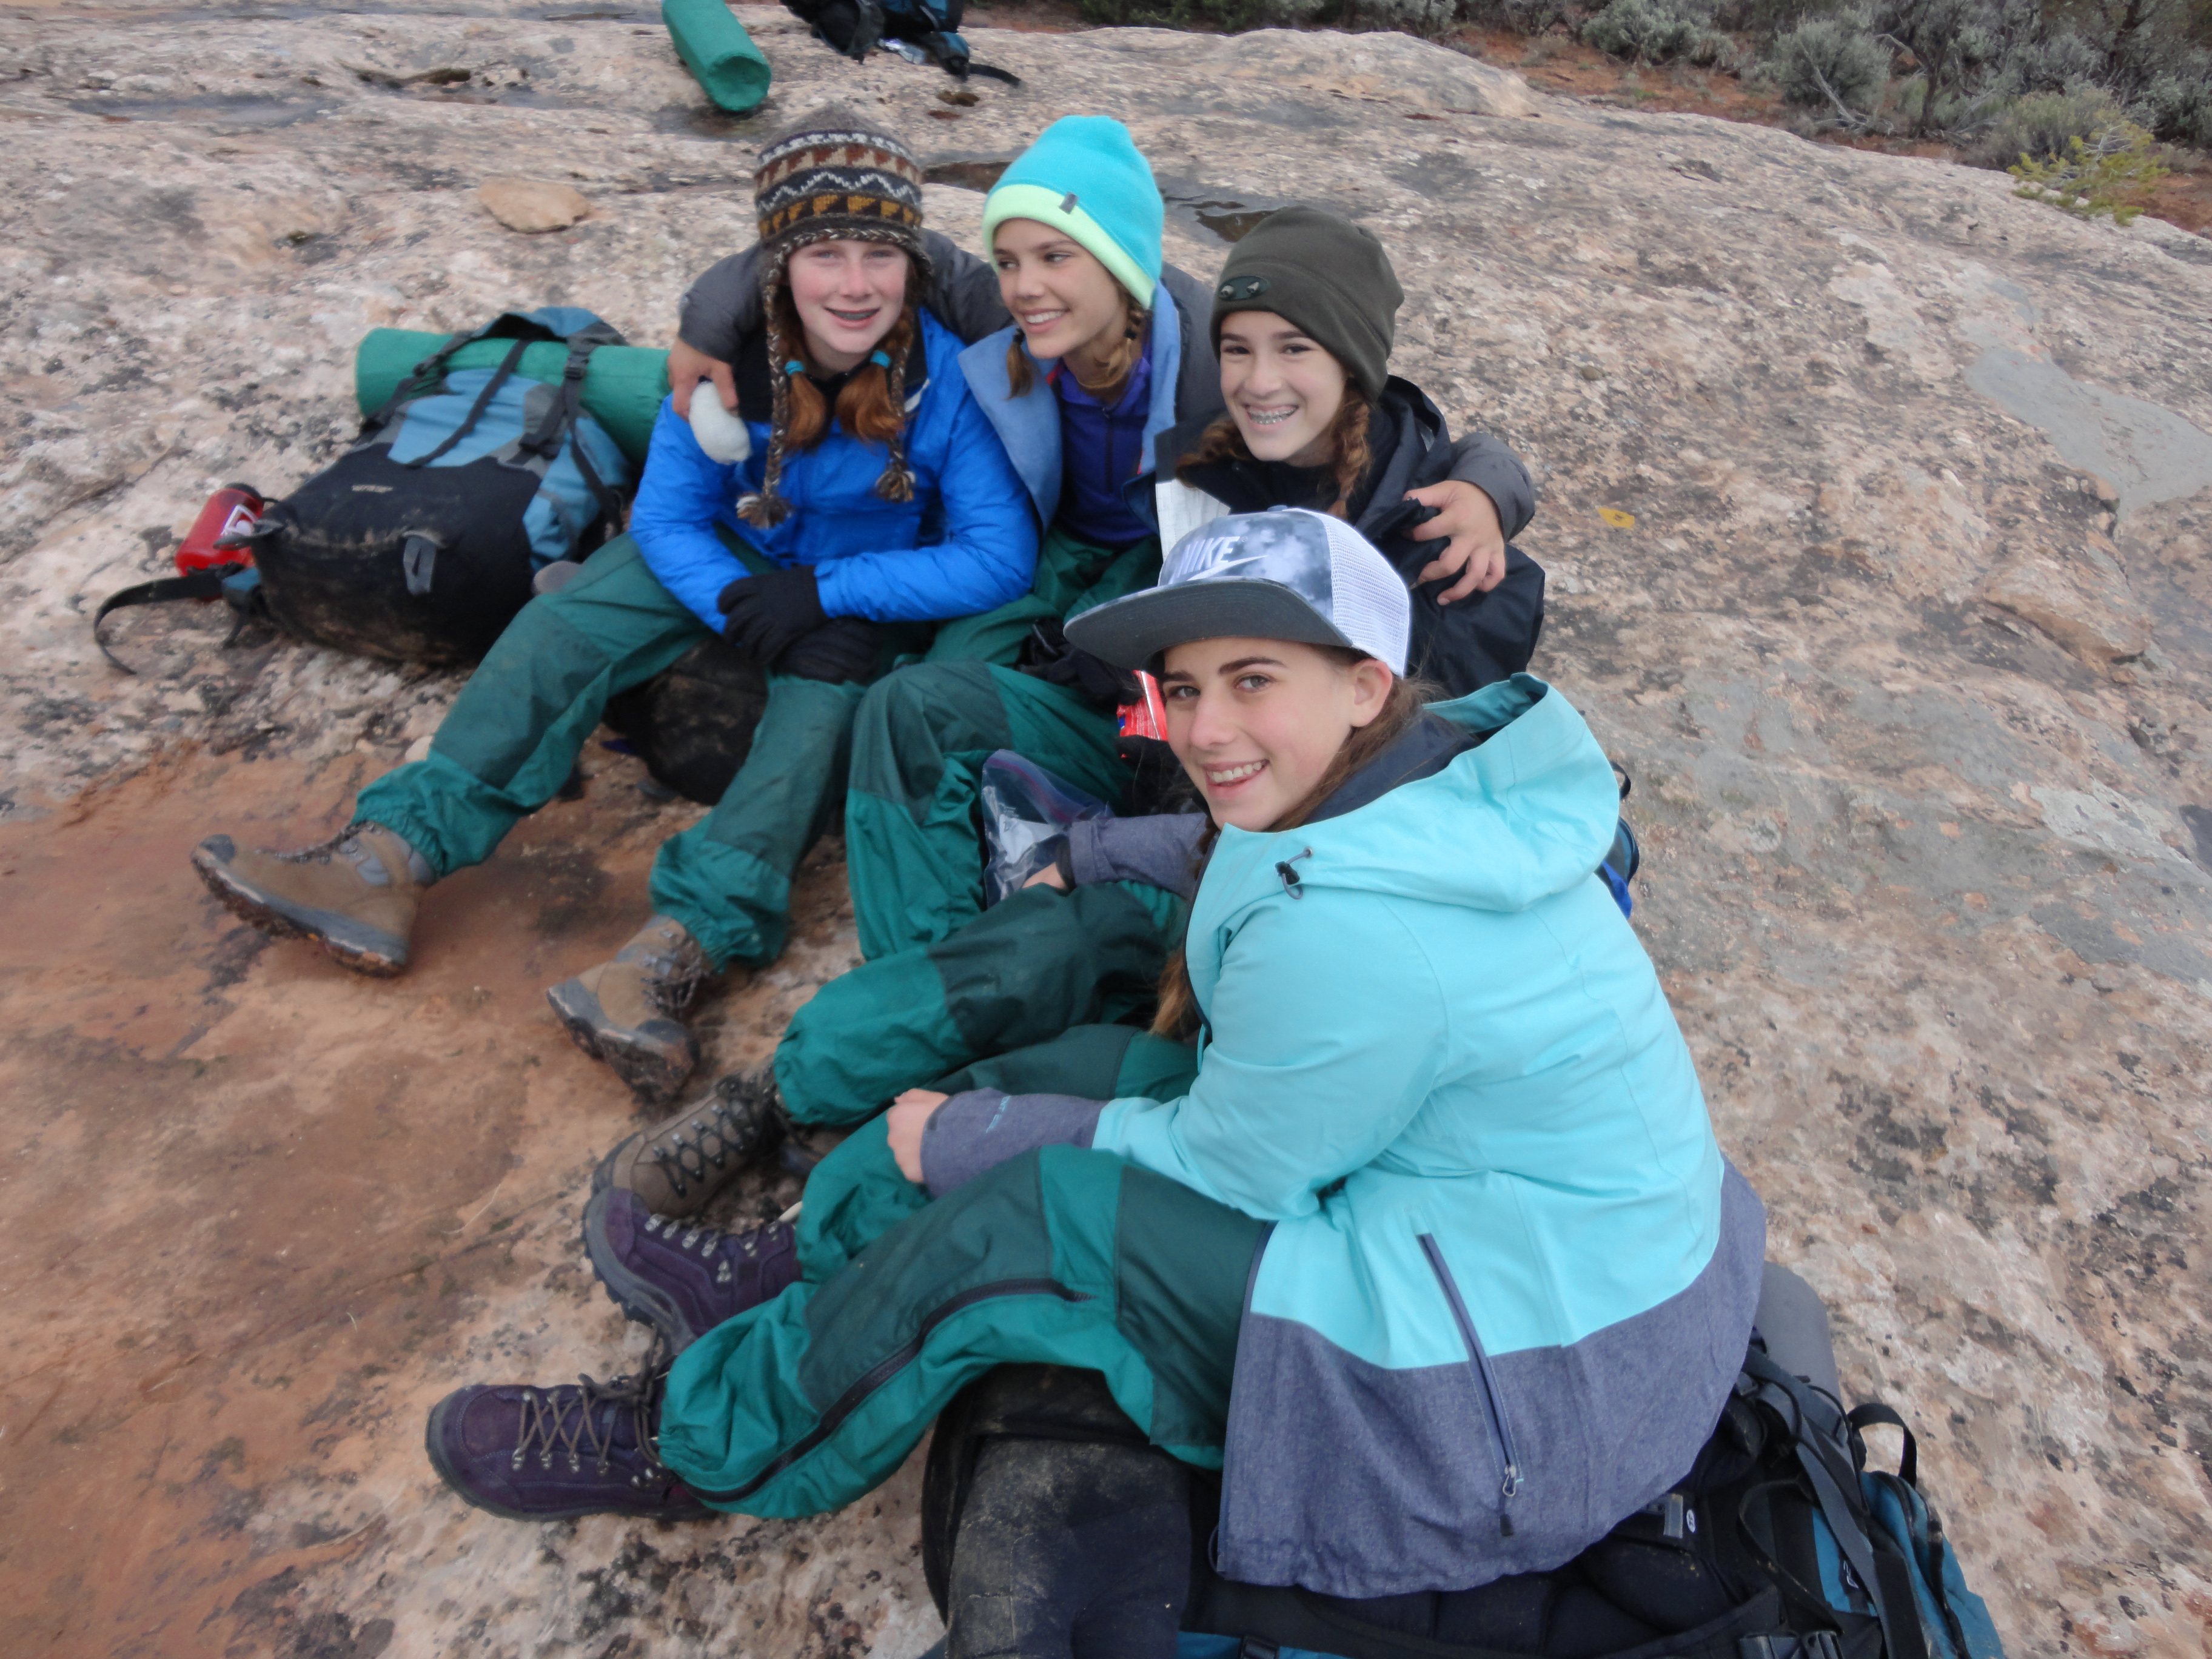 Summer Program - Hiking | NOLS Idaho Girls Backpacking Adventure